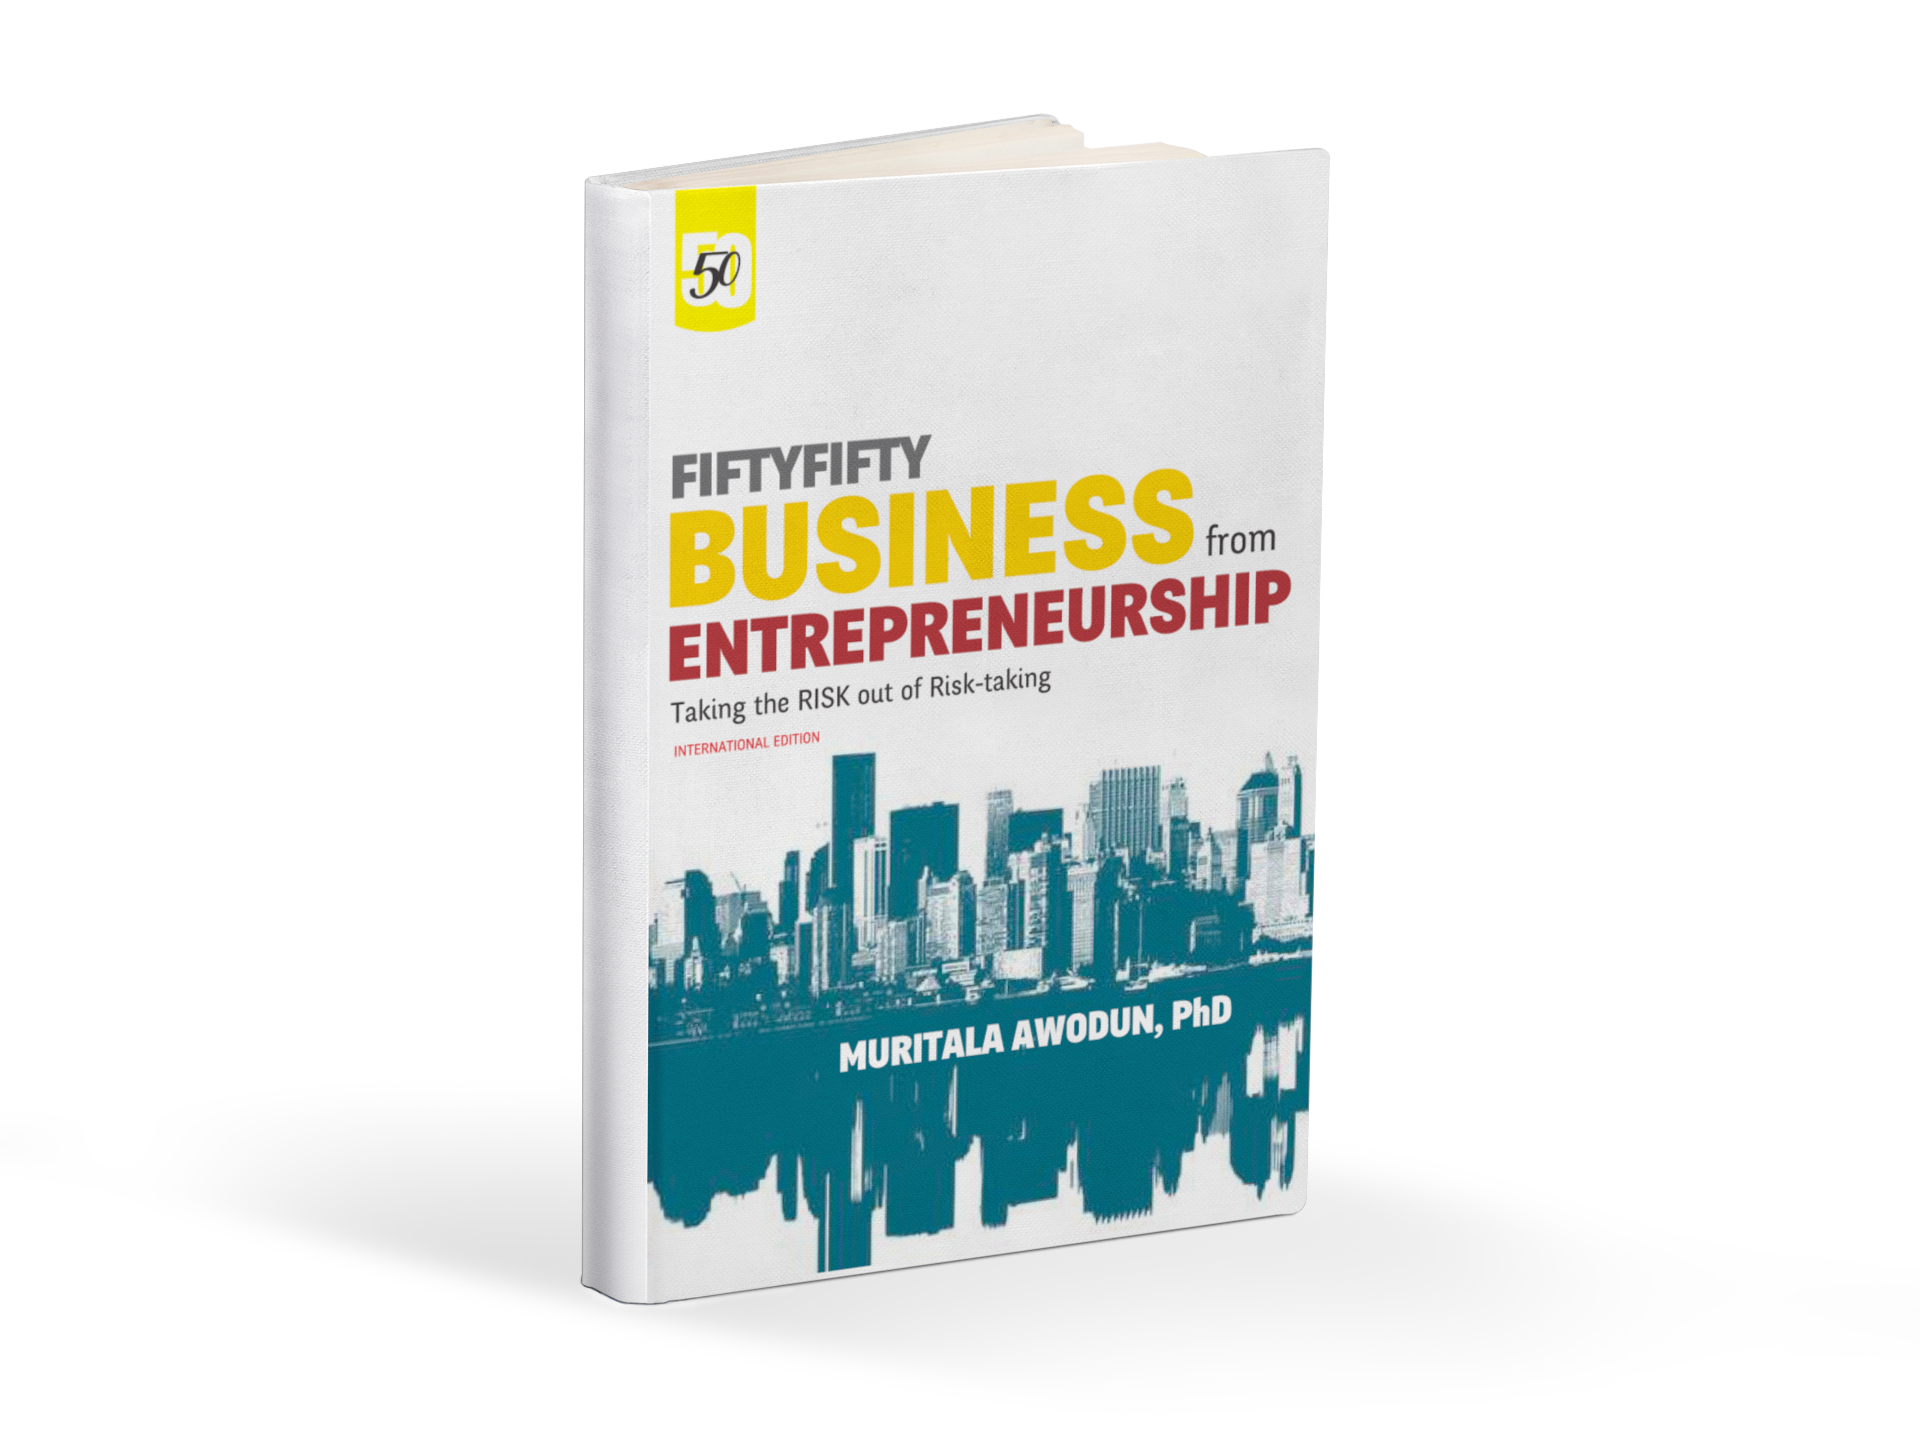 fifty-fifty business revised edition mockup